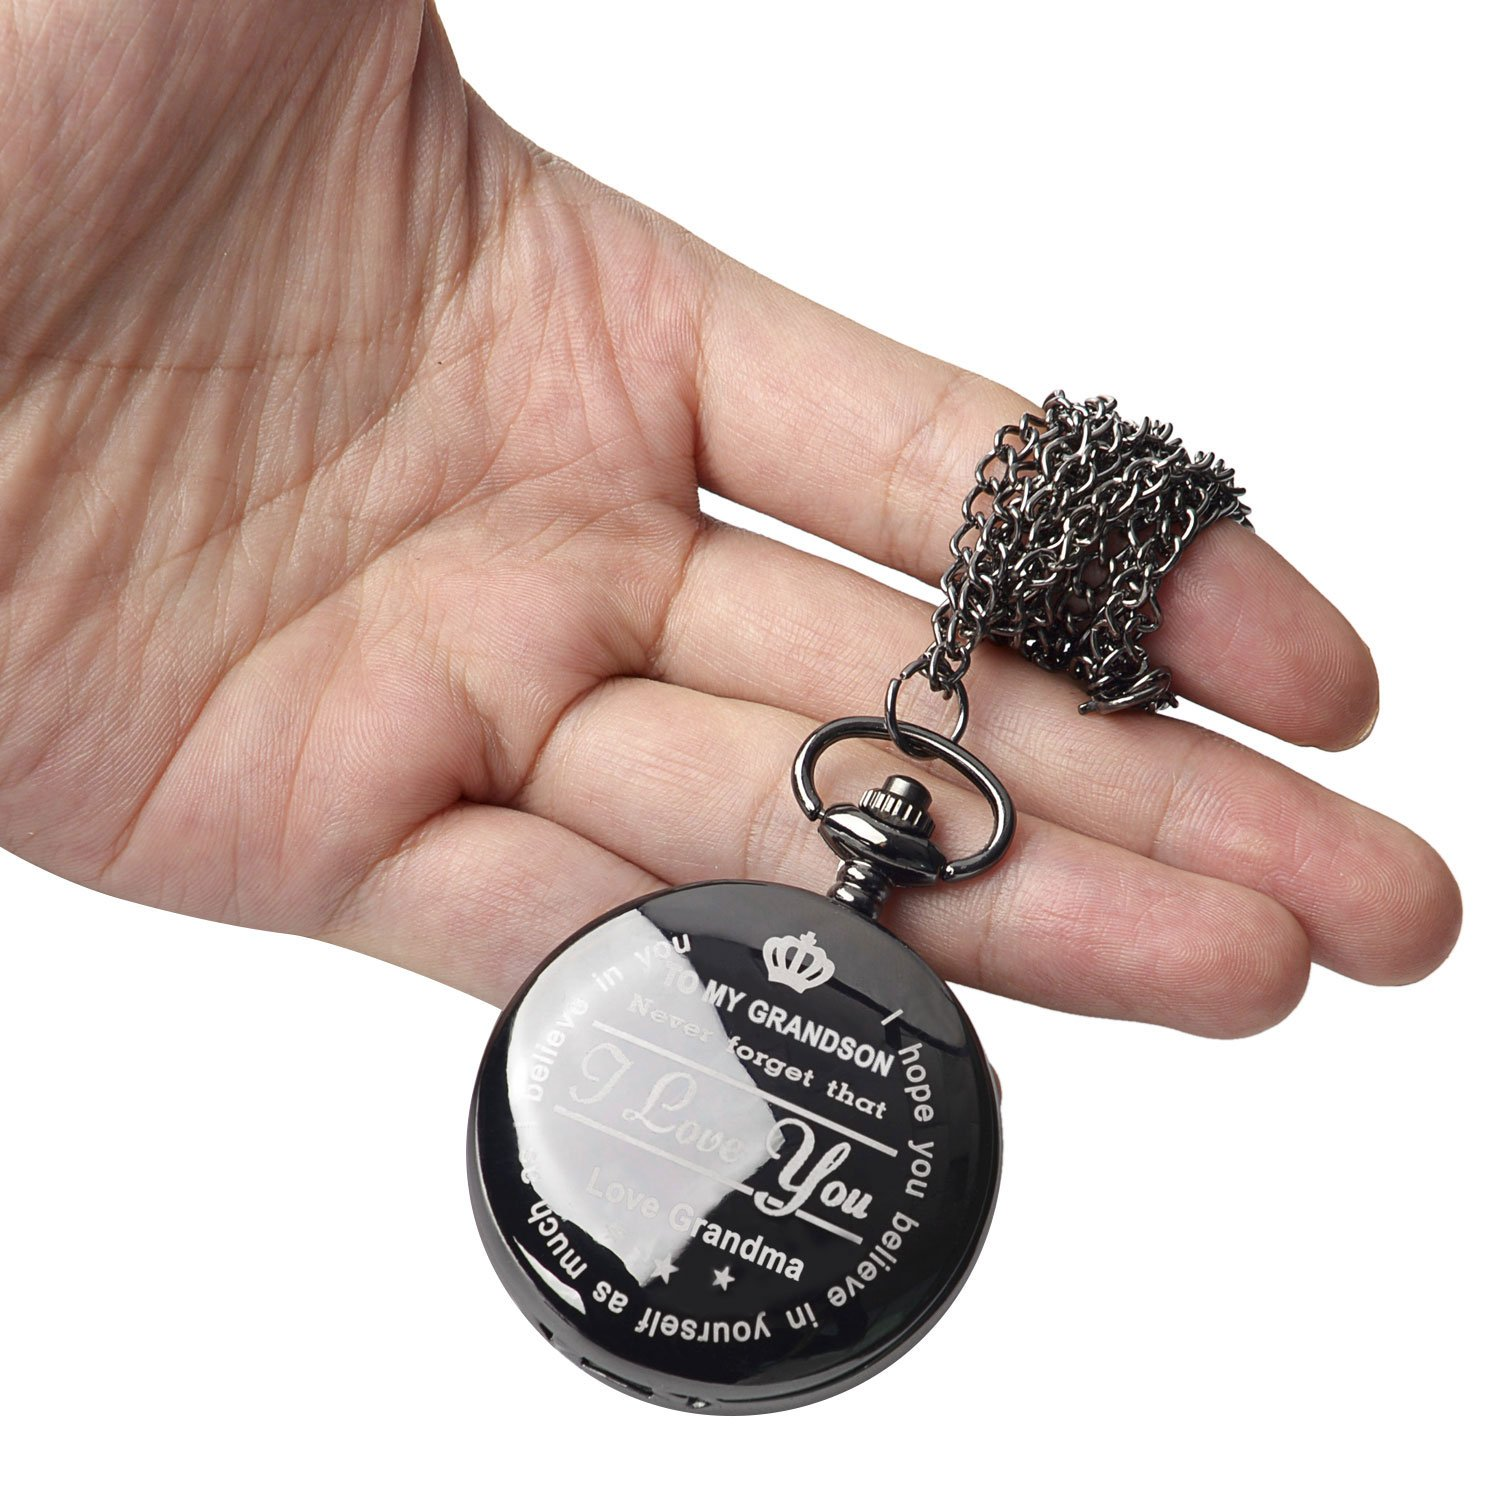 Pocket Watch ''To My GrandSon - Love Grandma(Love Grandpa)''Necklace Chain From Grandparents to Grandson Gifts with Black Gift Box By Qise (Love GrandMa Black) by Qise (Image #3)